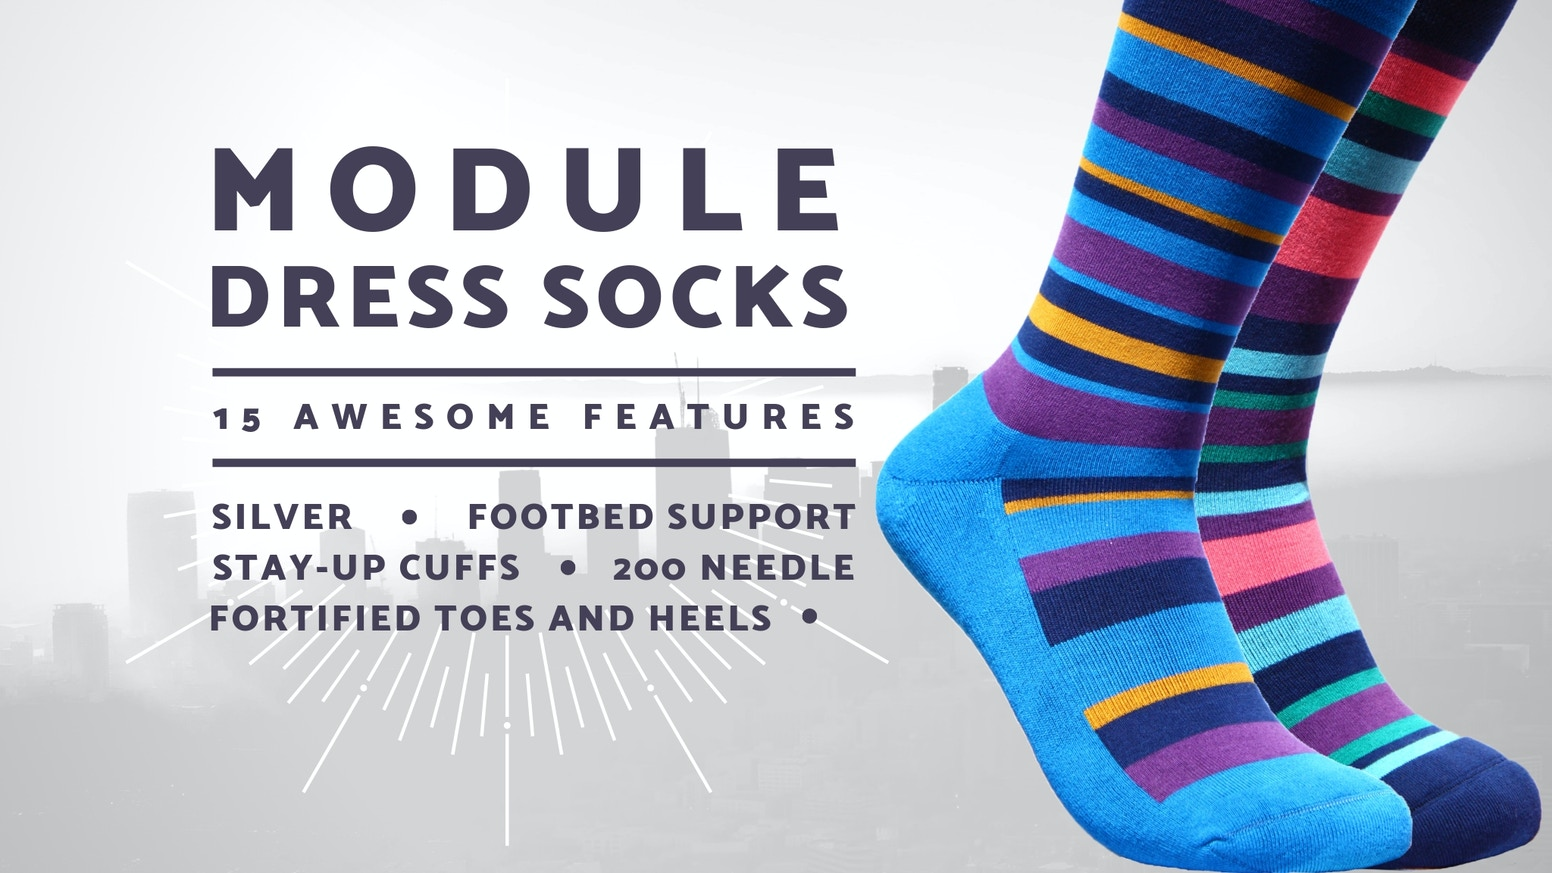 The world's most versatile, high-performance, super comfortable dress socks that are built to last.